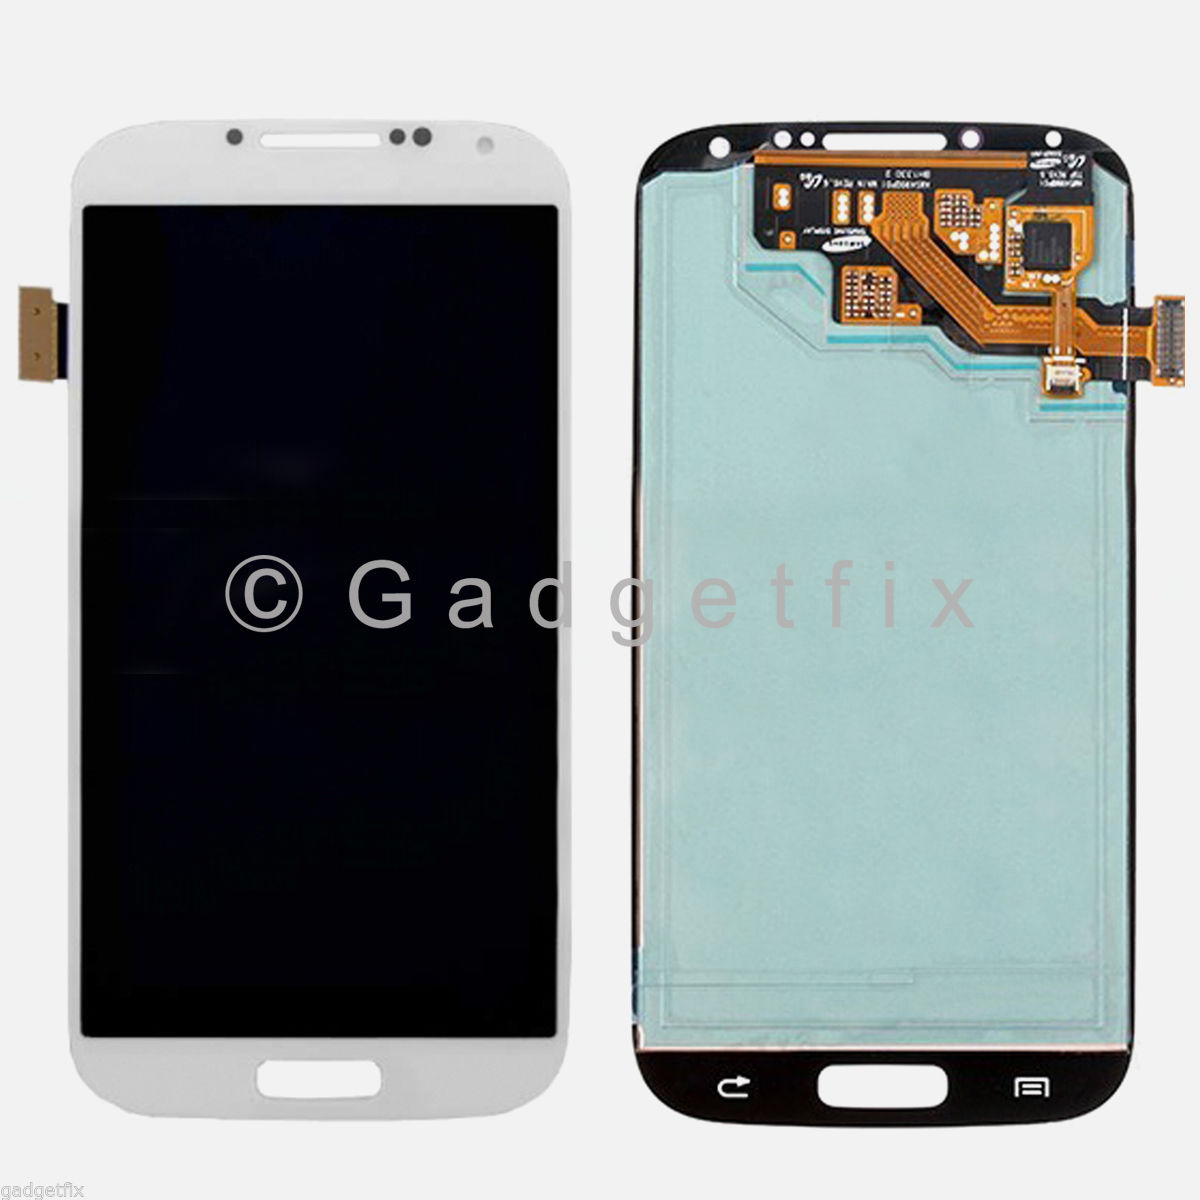 US White Samsung Galaxy S4 i9500 i9505 i337 LCD Screen + Digitizer Touch Screen